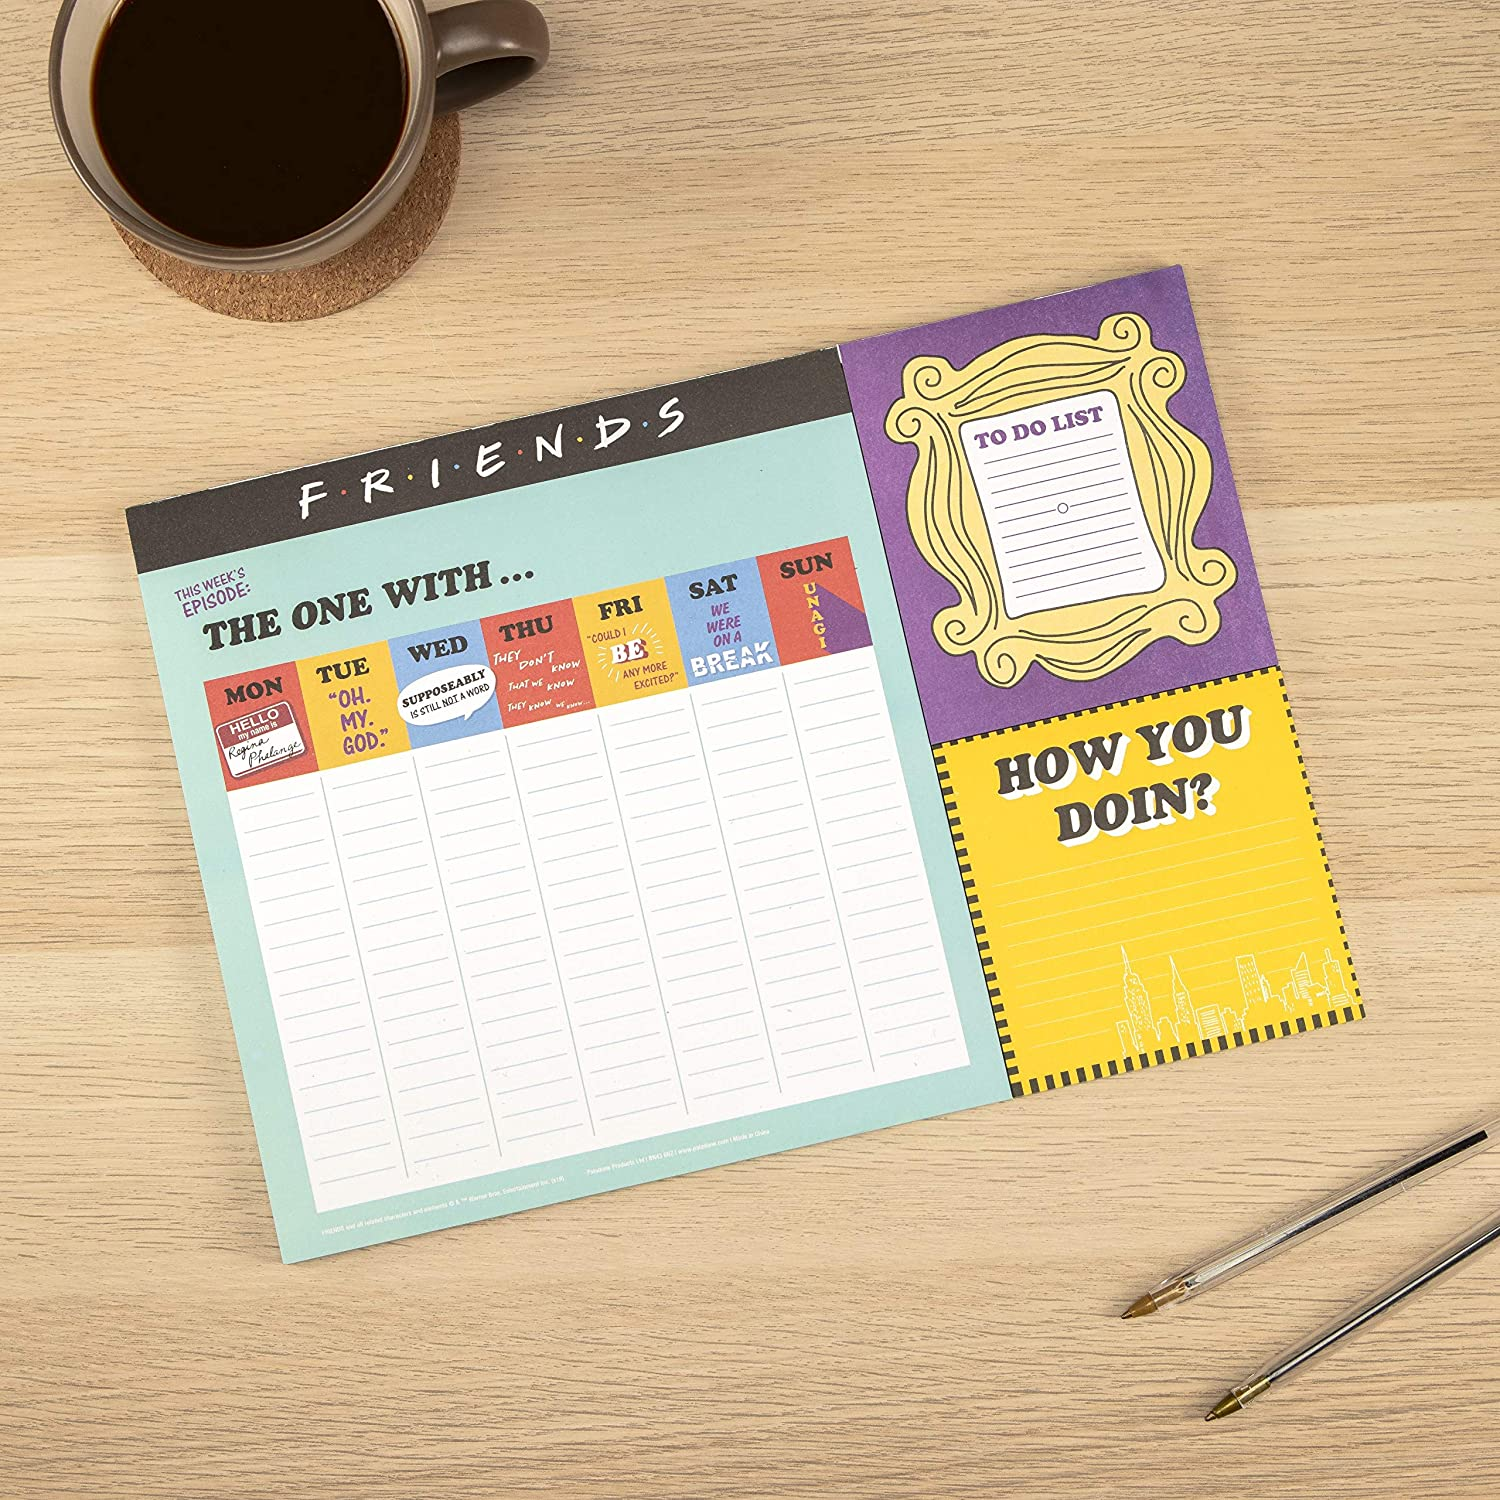 Friends TV Sitcom Themed Desk Planner Weekly Calendar 52 Pages - Includes A Handy To Do List